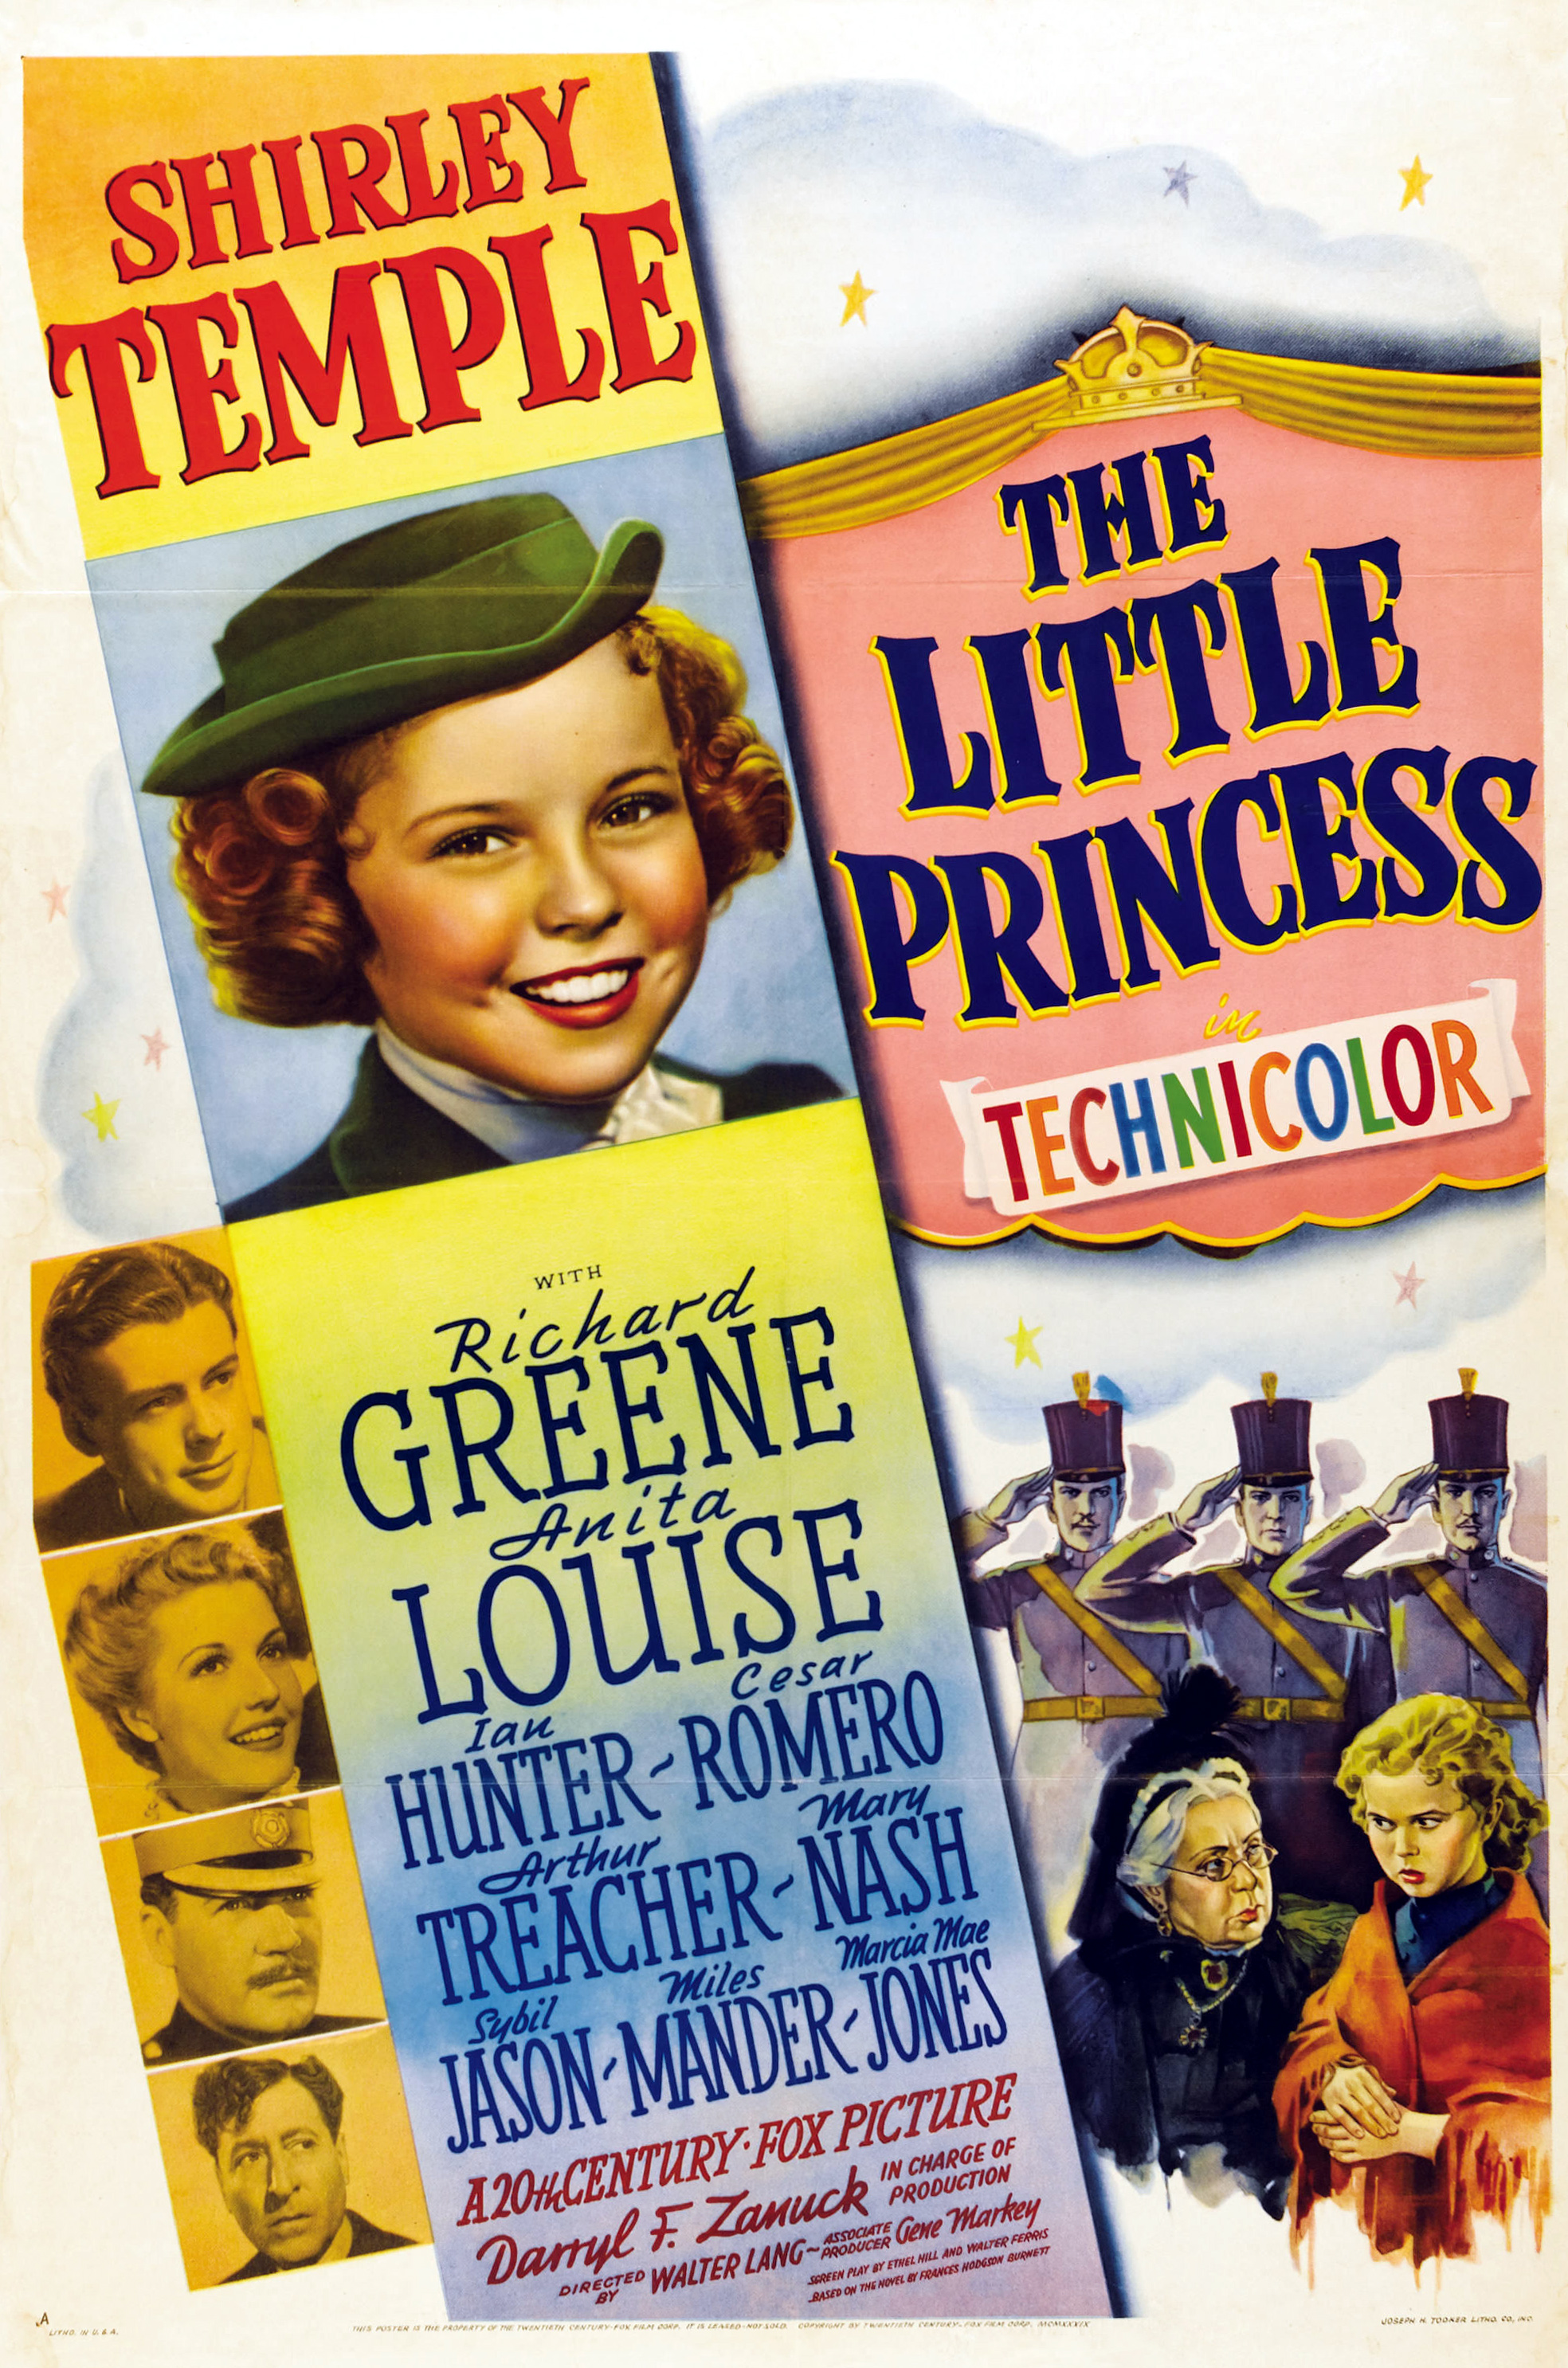 Little Princess, The (1939)